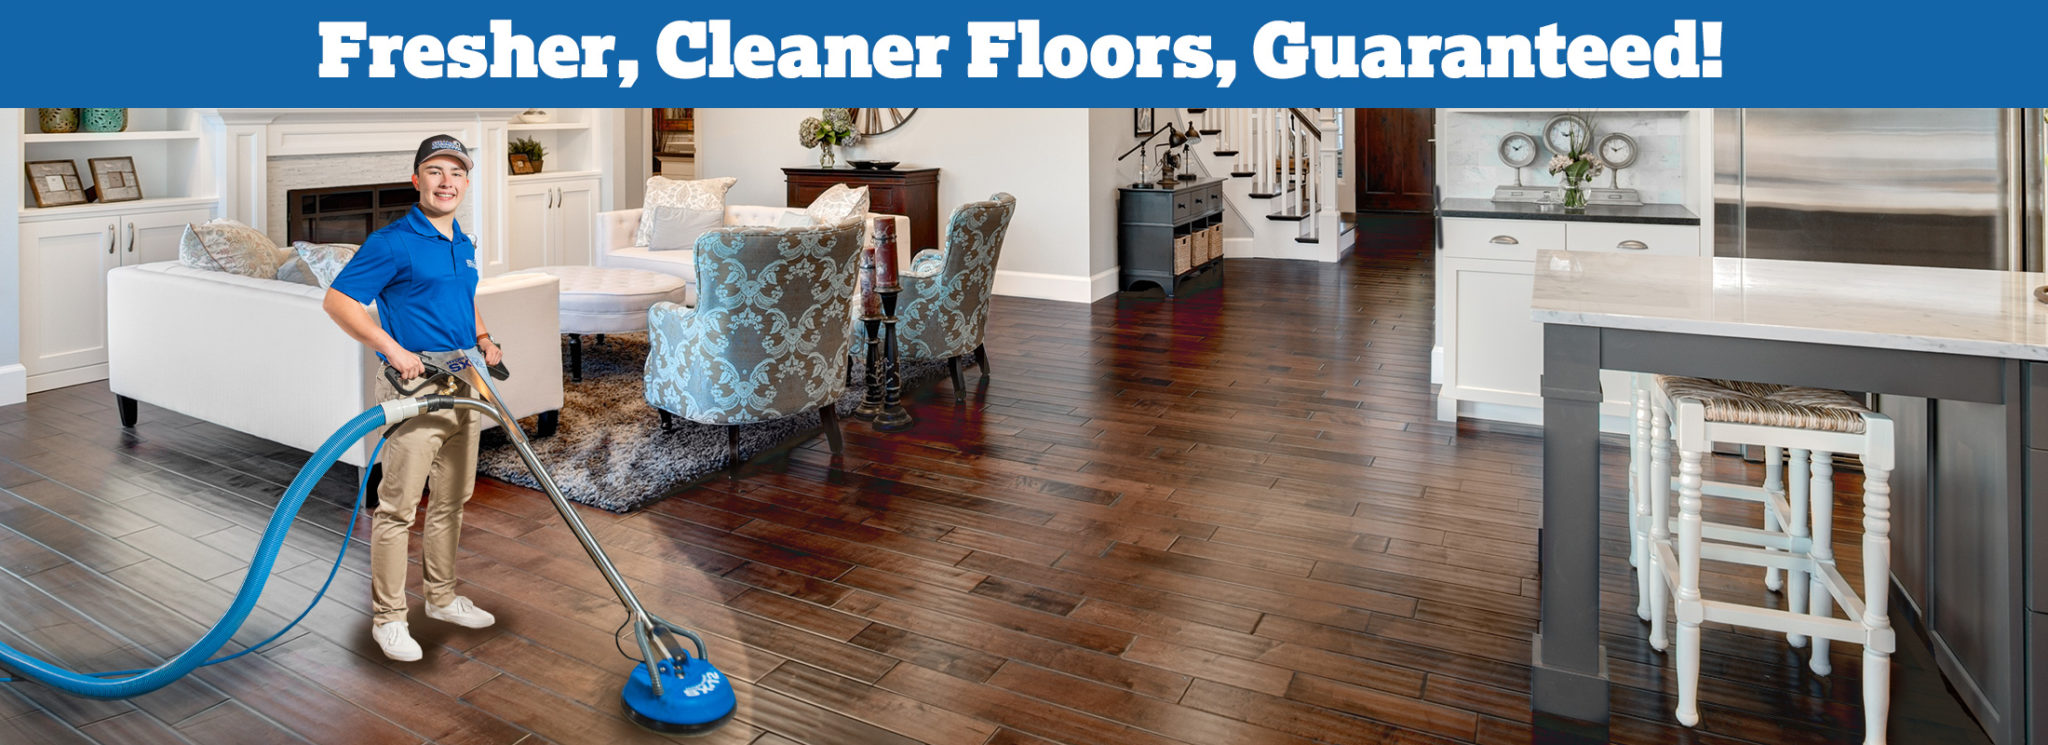 1 tile and grout cleaning in tucson